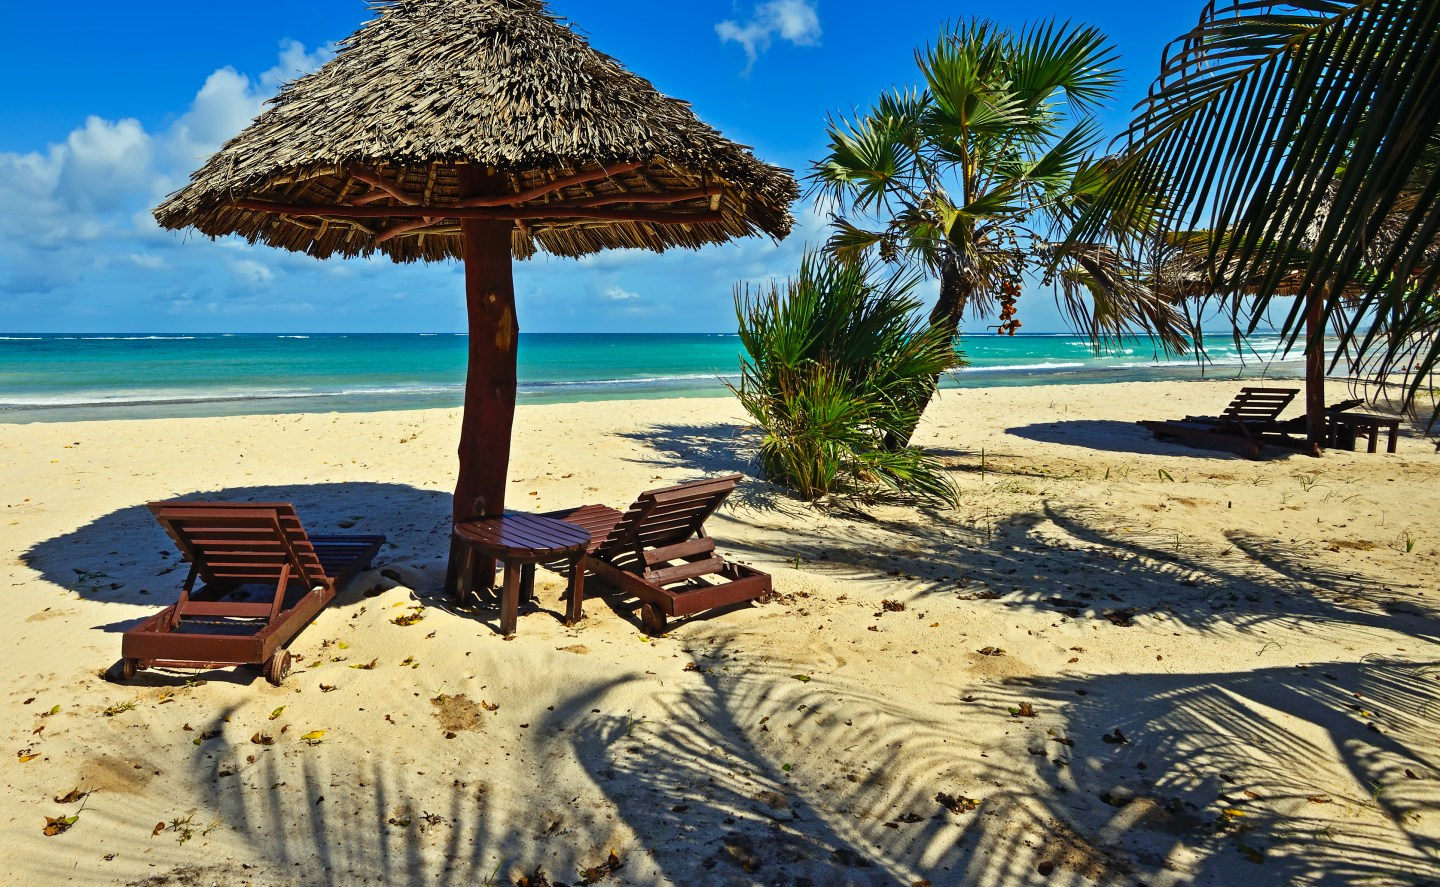 a view of the Indian Ocean from Diani beach in Kenya